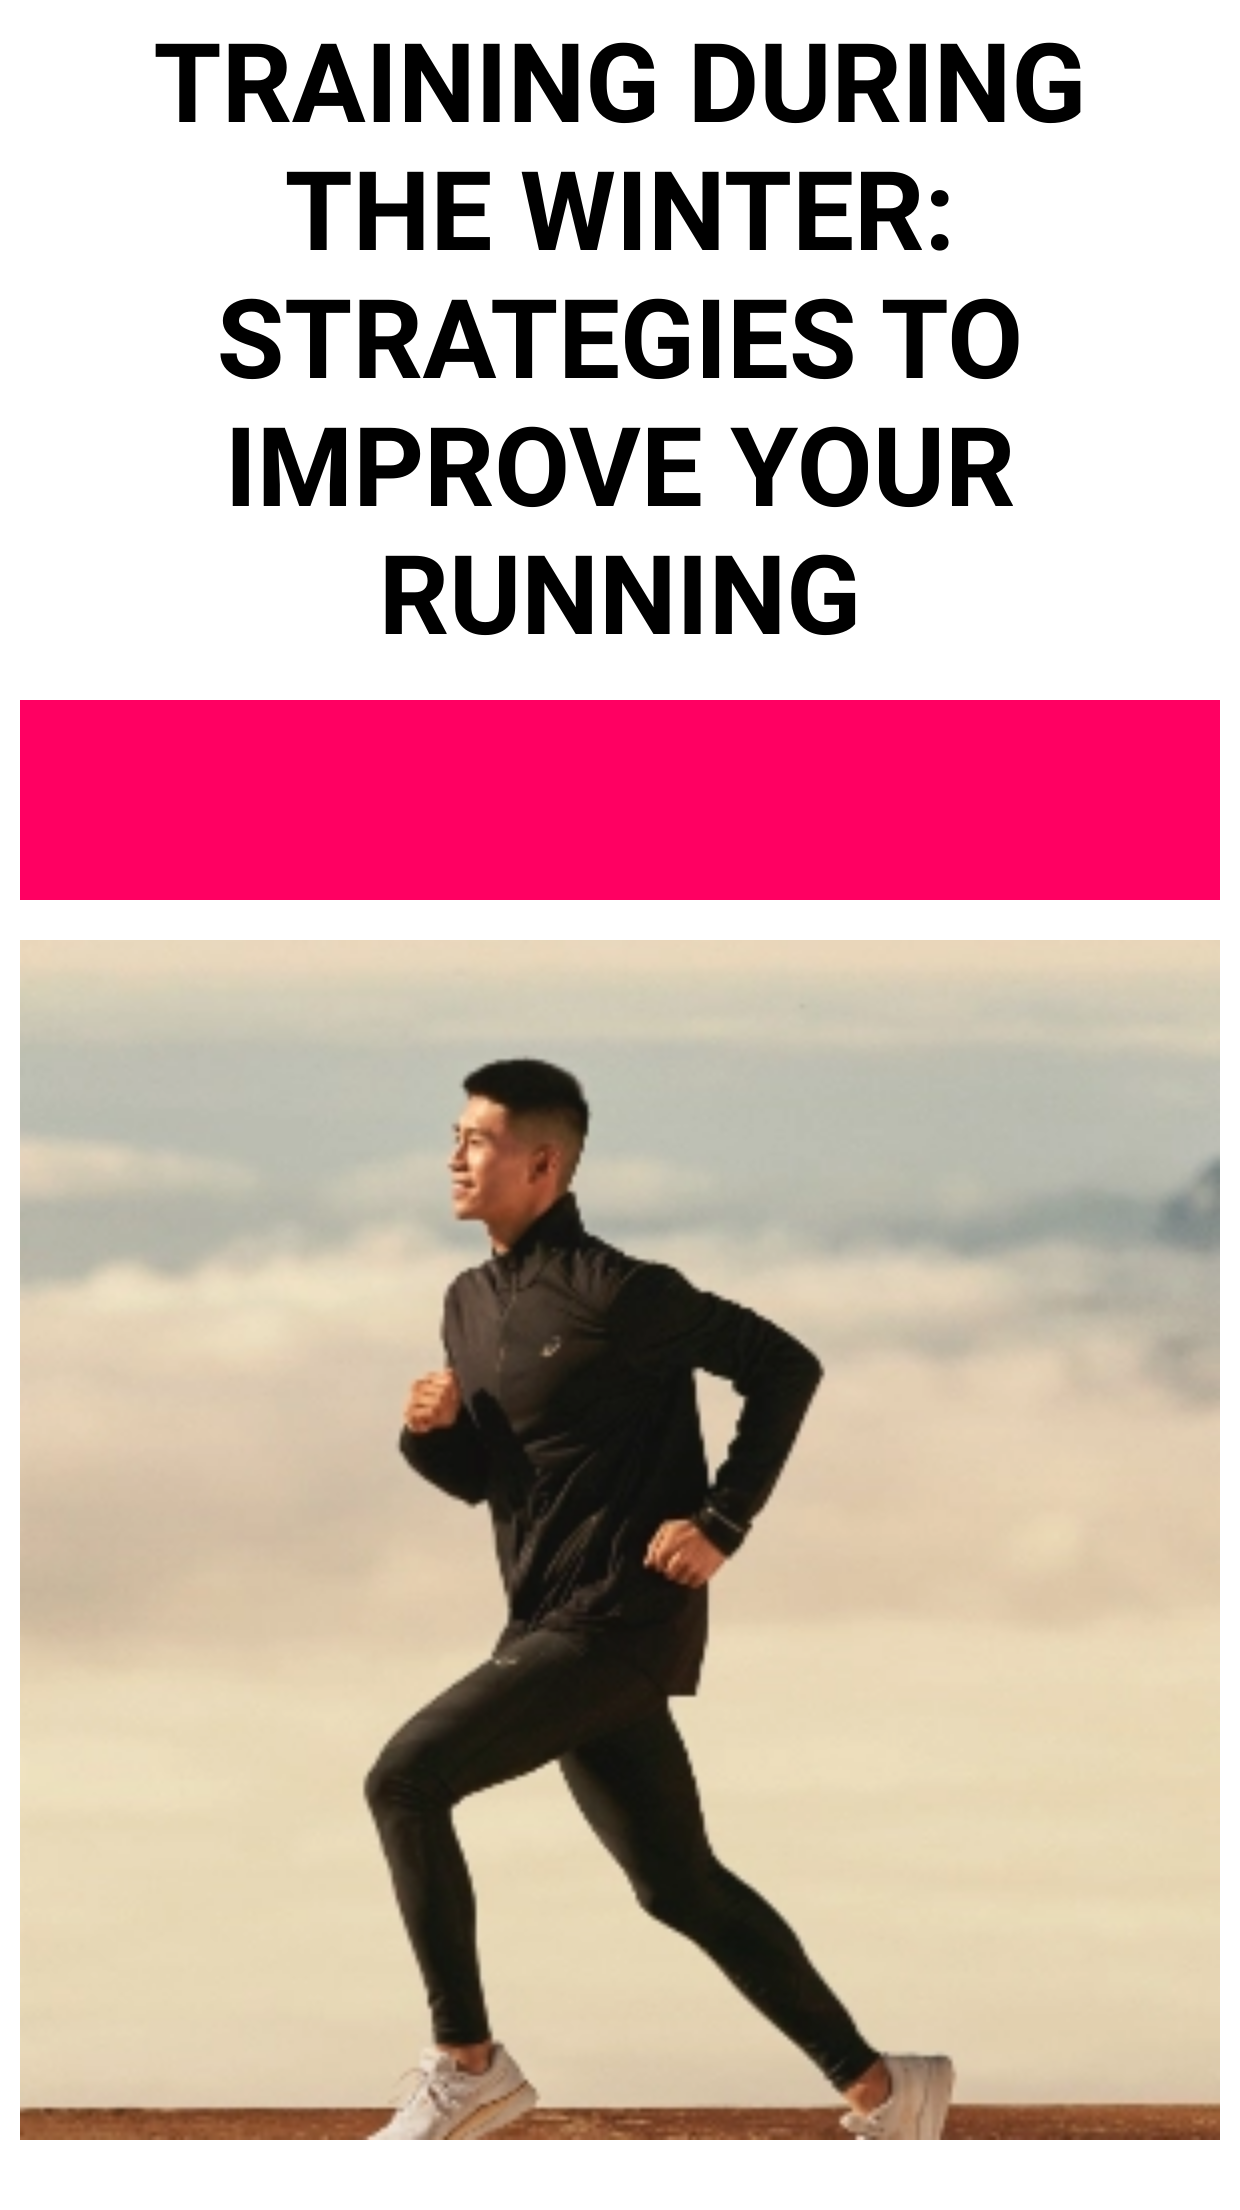 Training During The Winter: Strategies To Improve Your Running